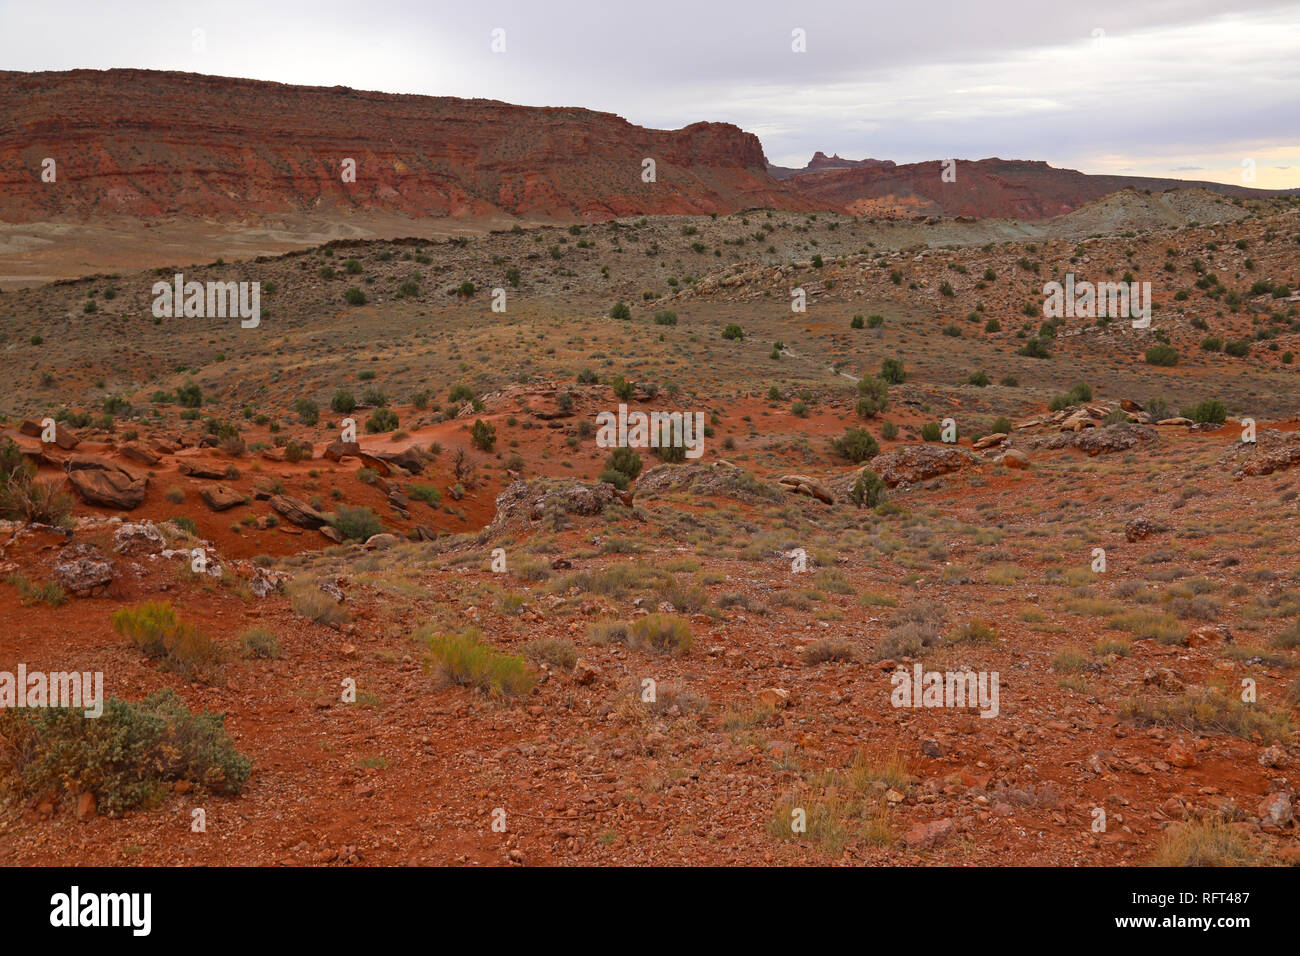 A view of Cache Valley near the lower delicate arch viewpoint in Arches National Park, Utah. - Stock Image